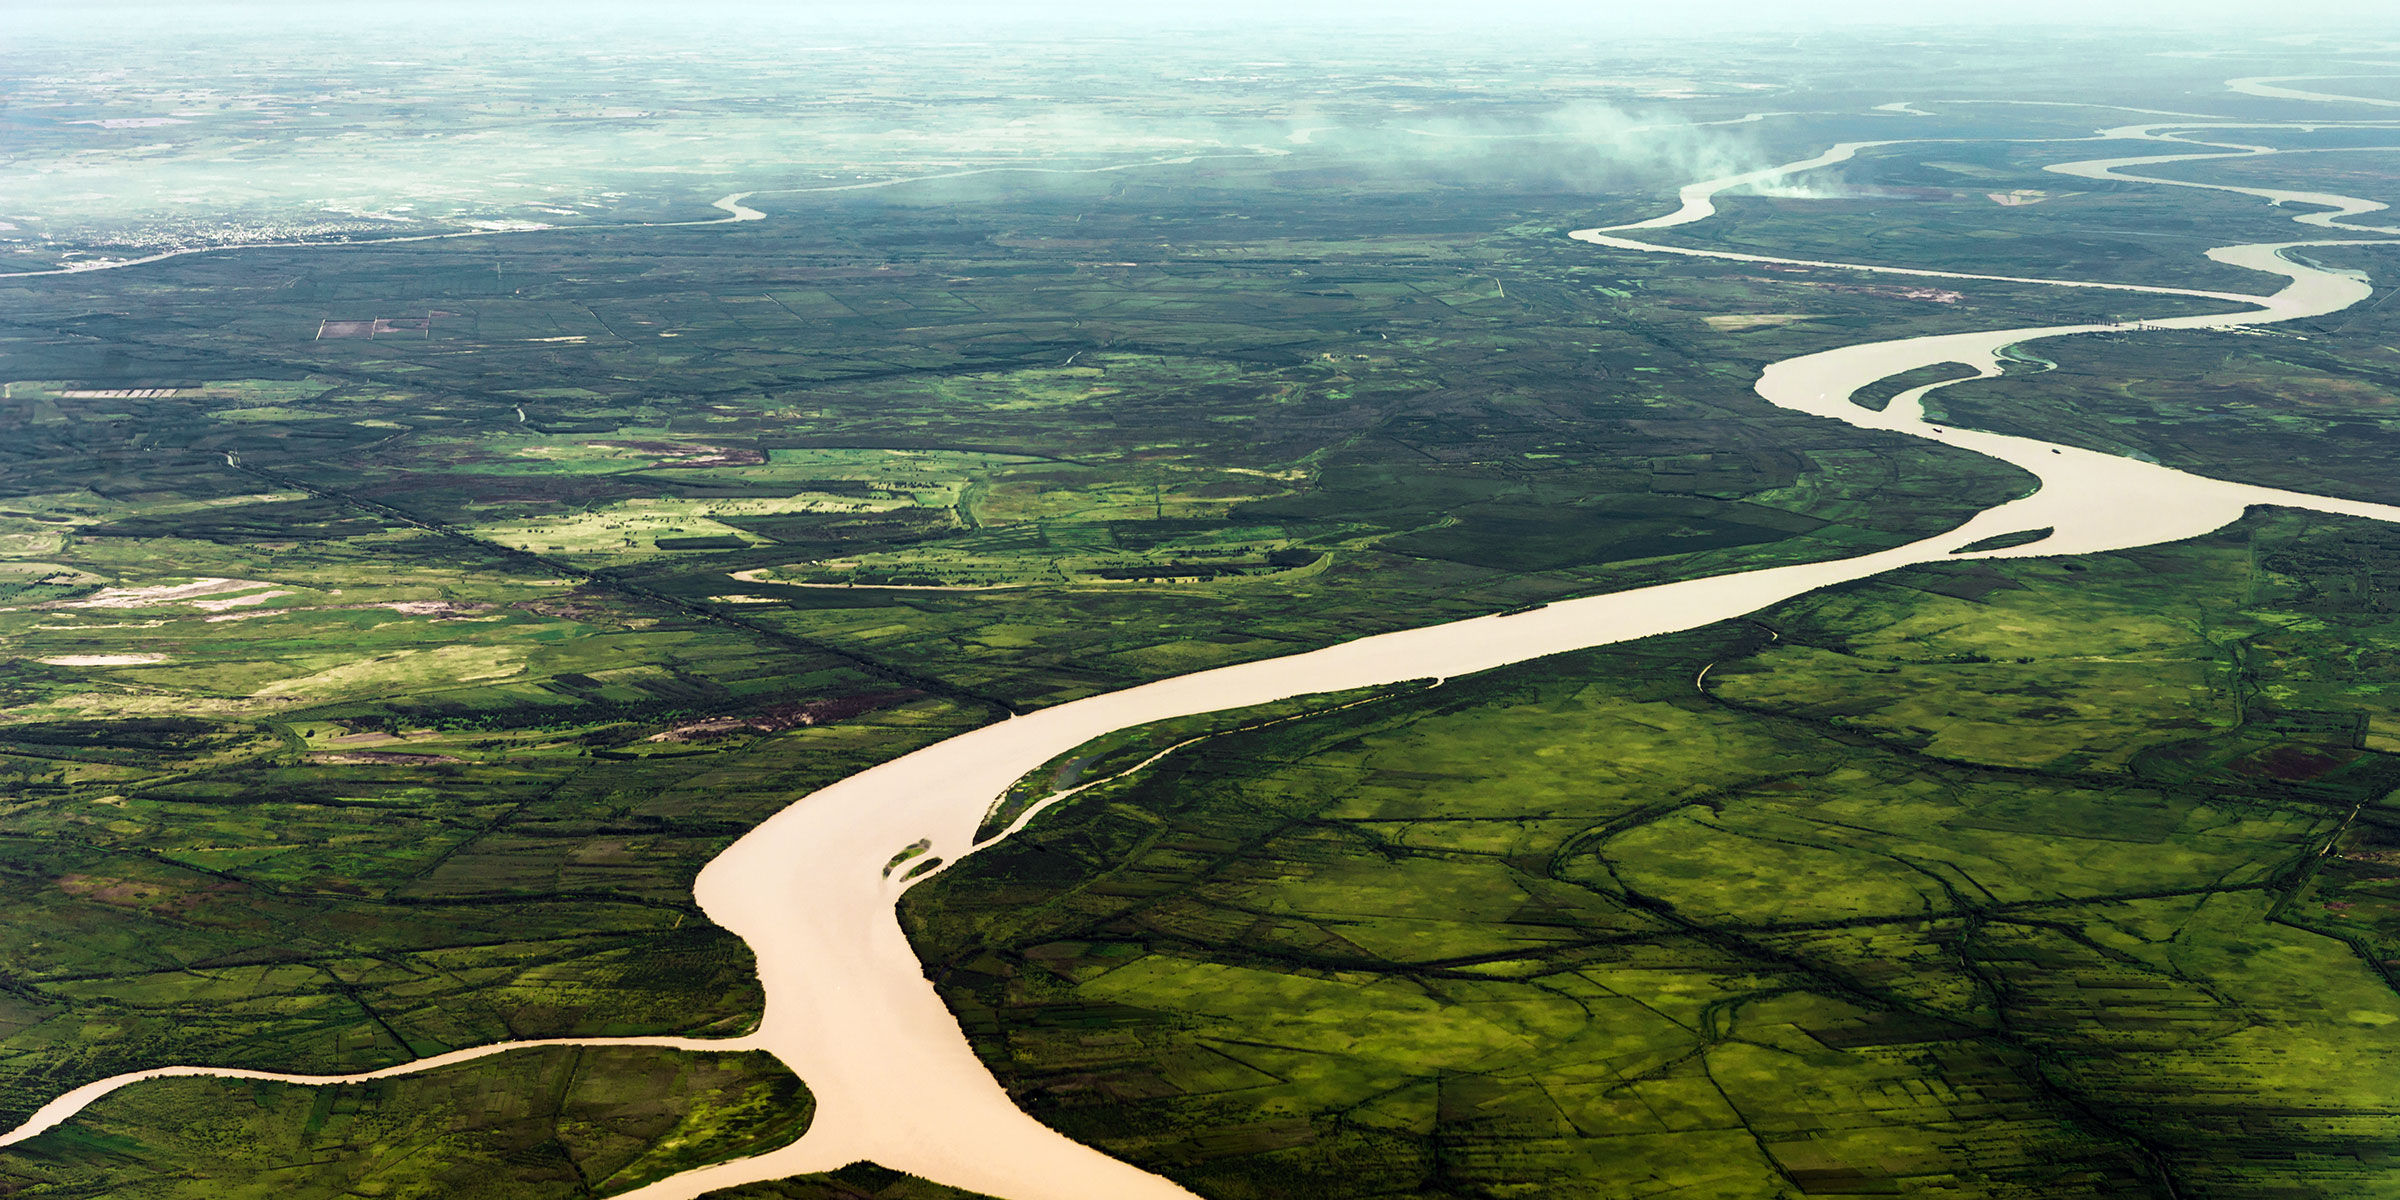 Aerial view of a silver river winding through fields and the Amazon rainforest